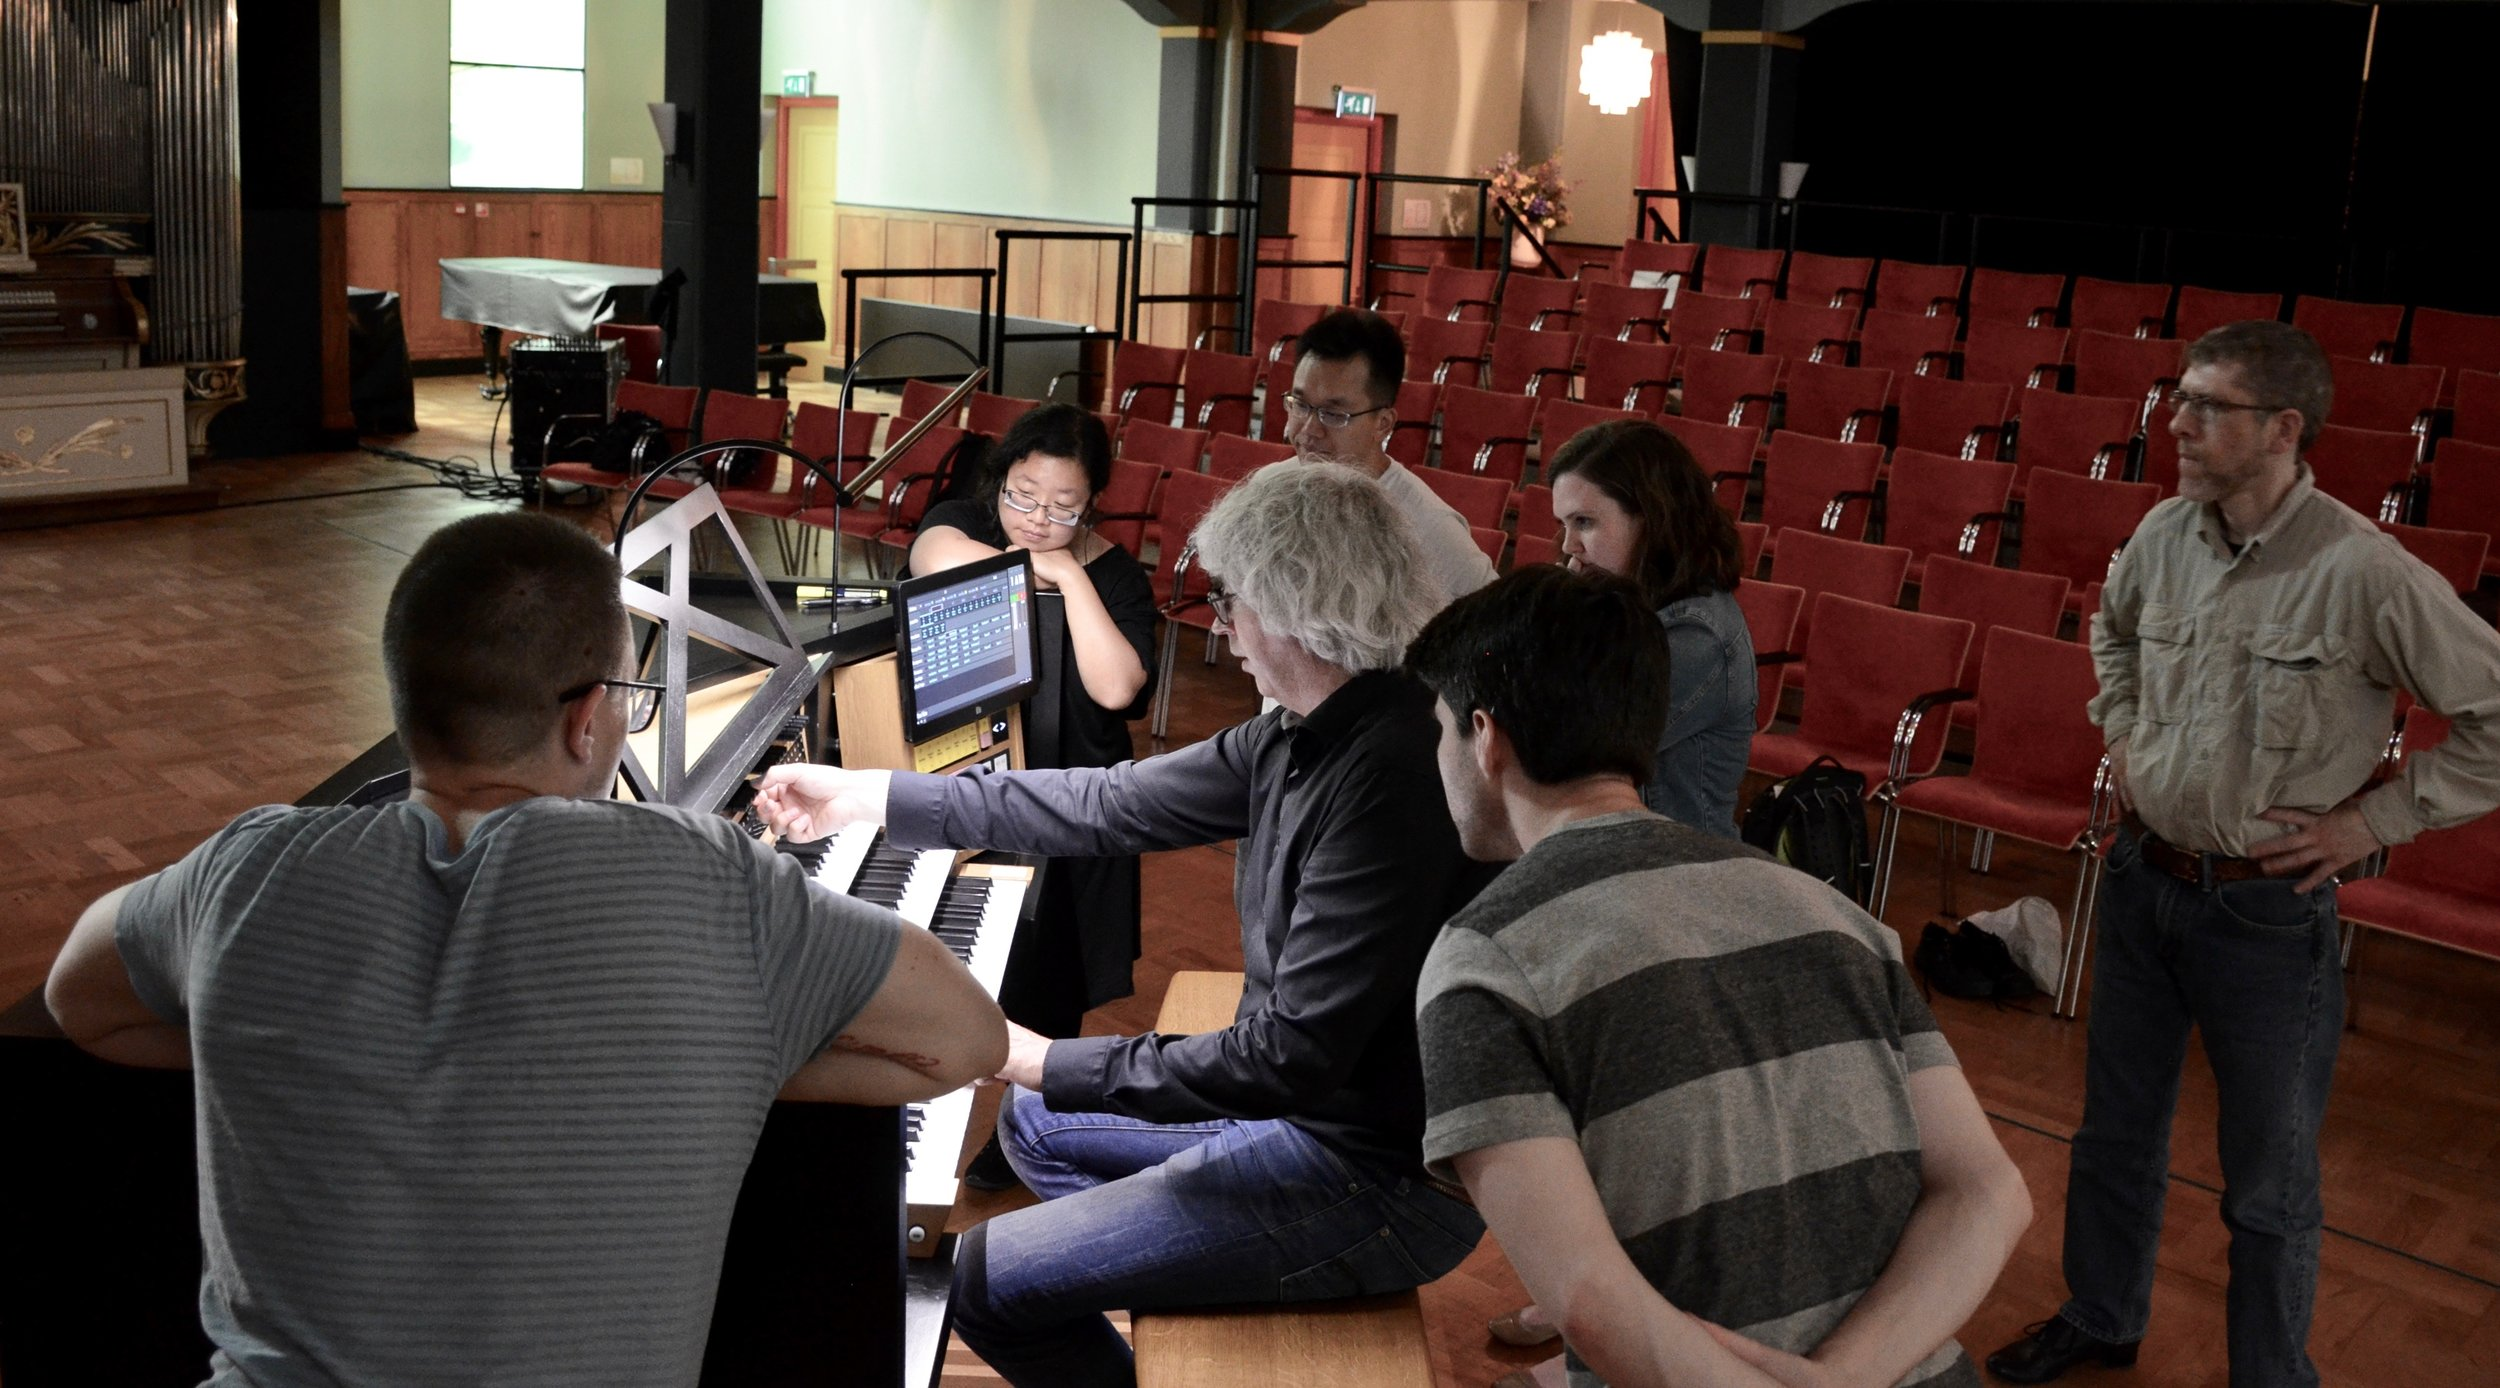 Hans Fidom demonstrates the MIDI capabilities of the electronic console at Orgelpark, Amsterdam.